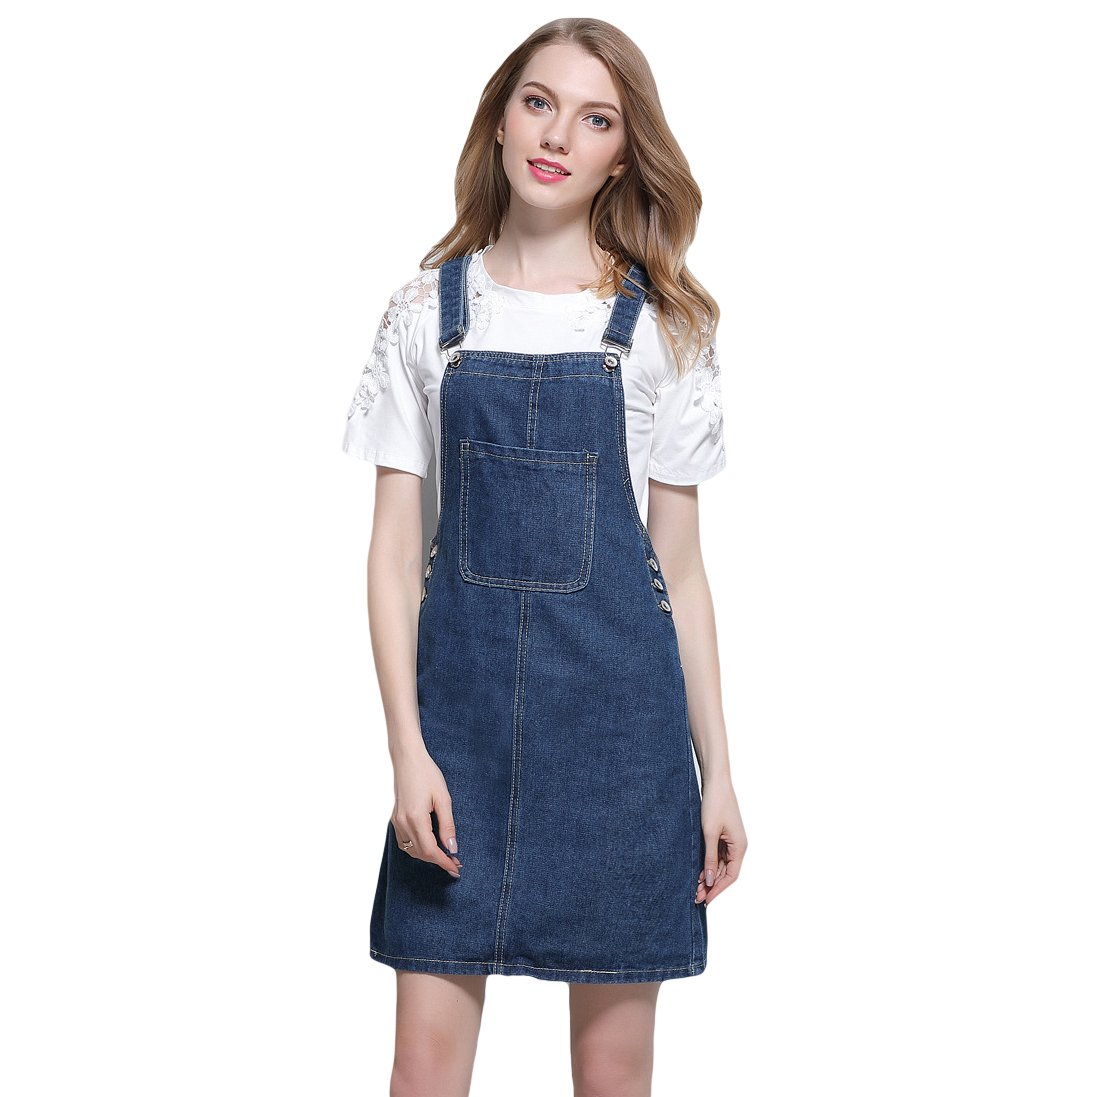 mewow Women's Junior Front Pocket Casual Short Suspender Skirt Denim Overall Dress (US 4)